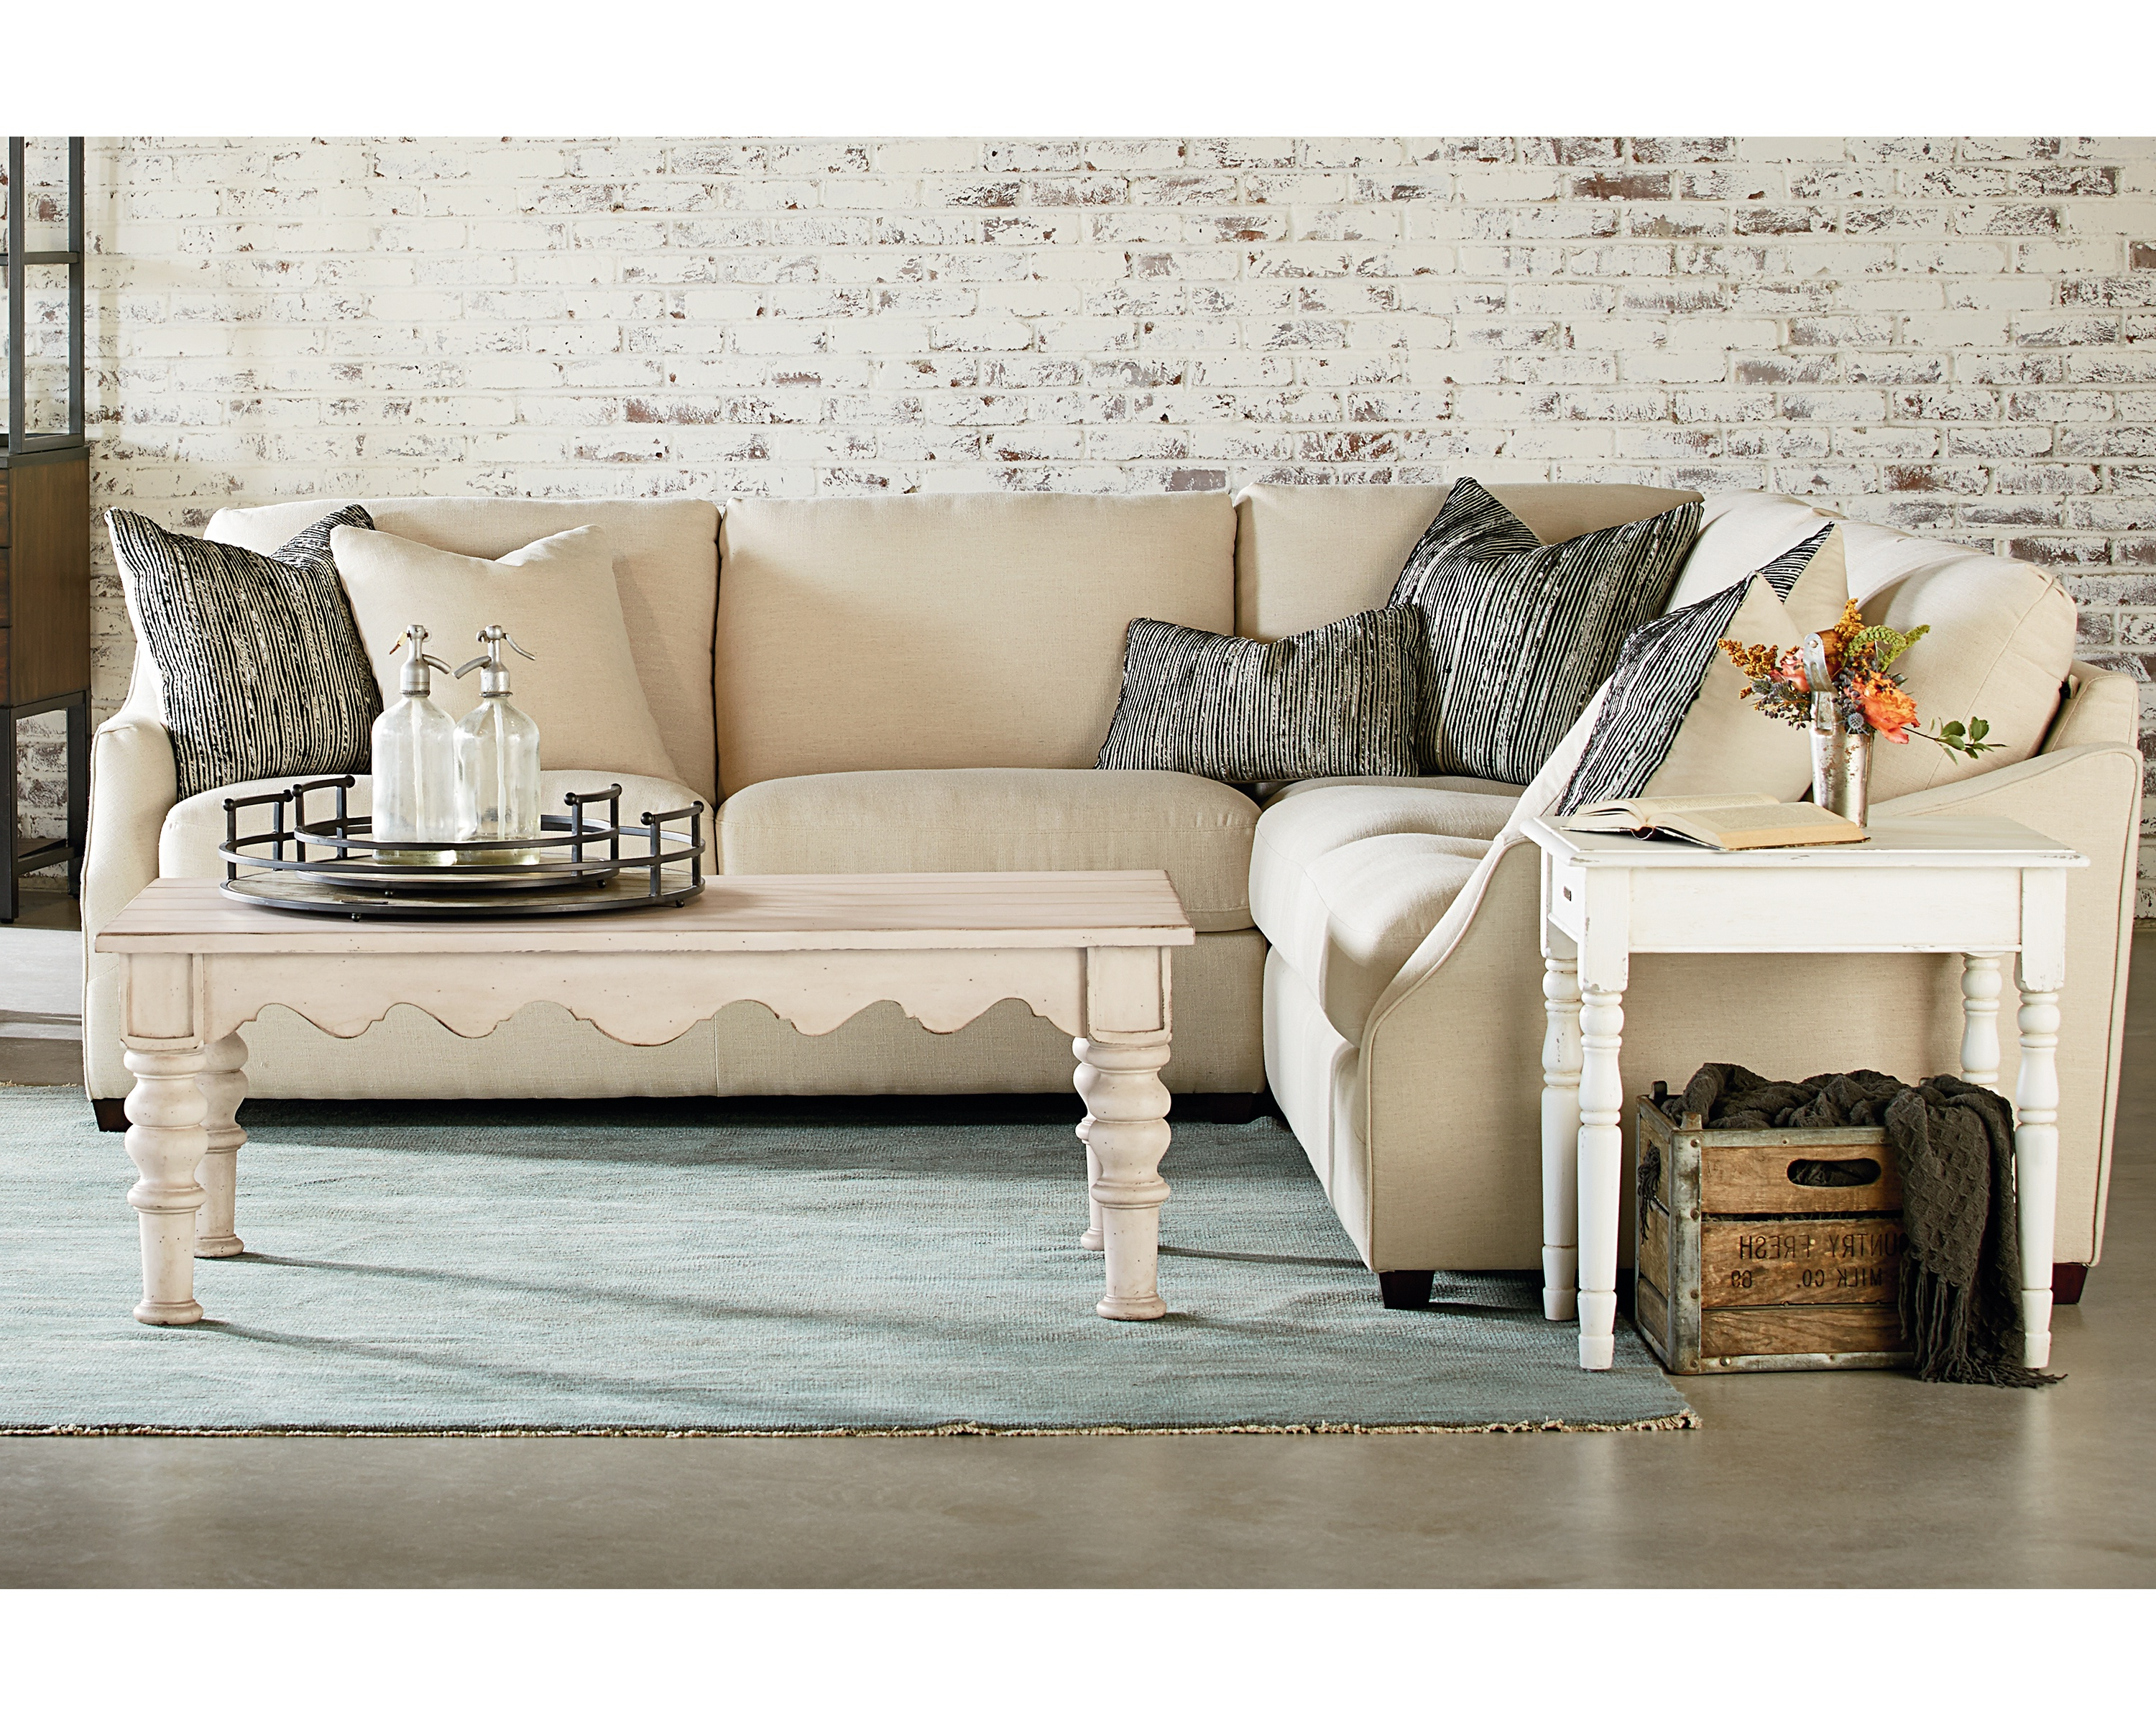 Homestead Sectional – Magnolia Home In Famous Magnolia Home Homestead Sofa Chairs By Joanna Gaines (View 6 of 20)